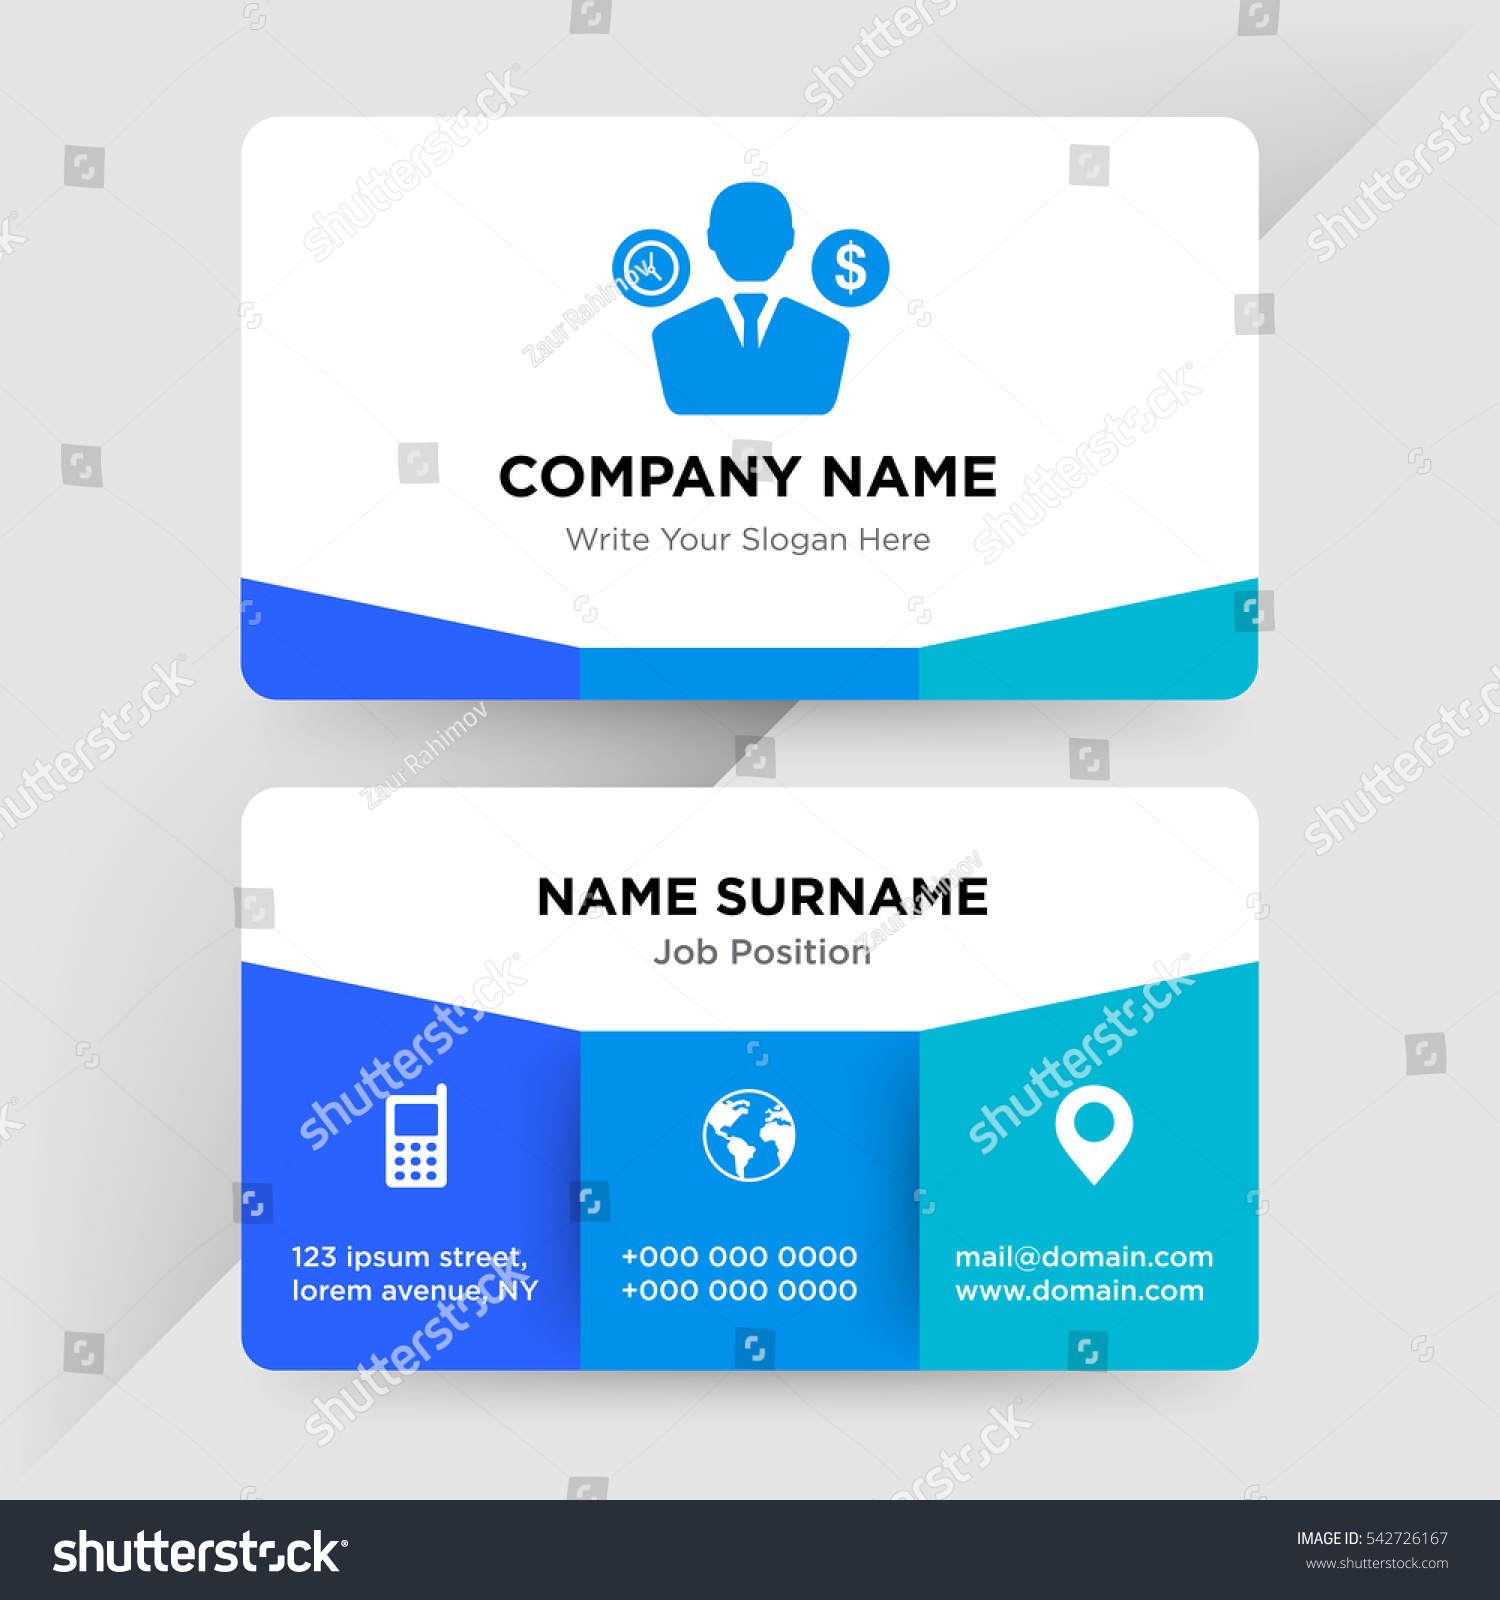 Template Business Card Management Company Blue Stock Vector (2018 ...